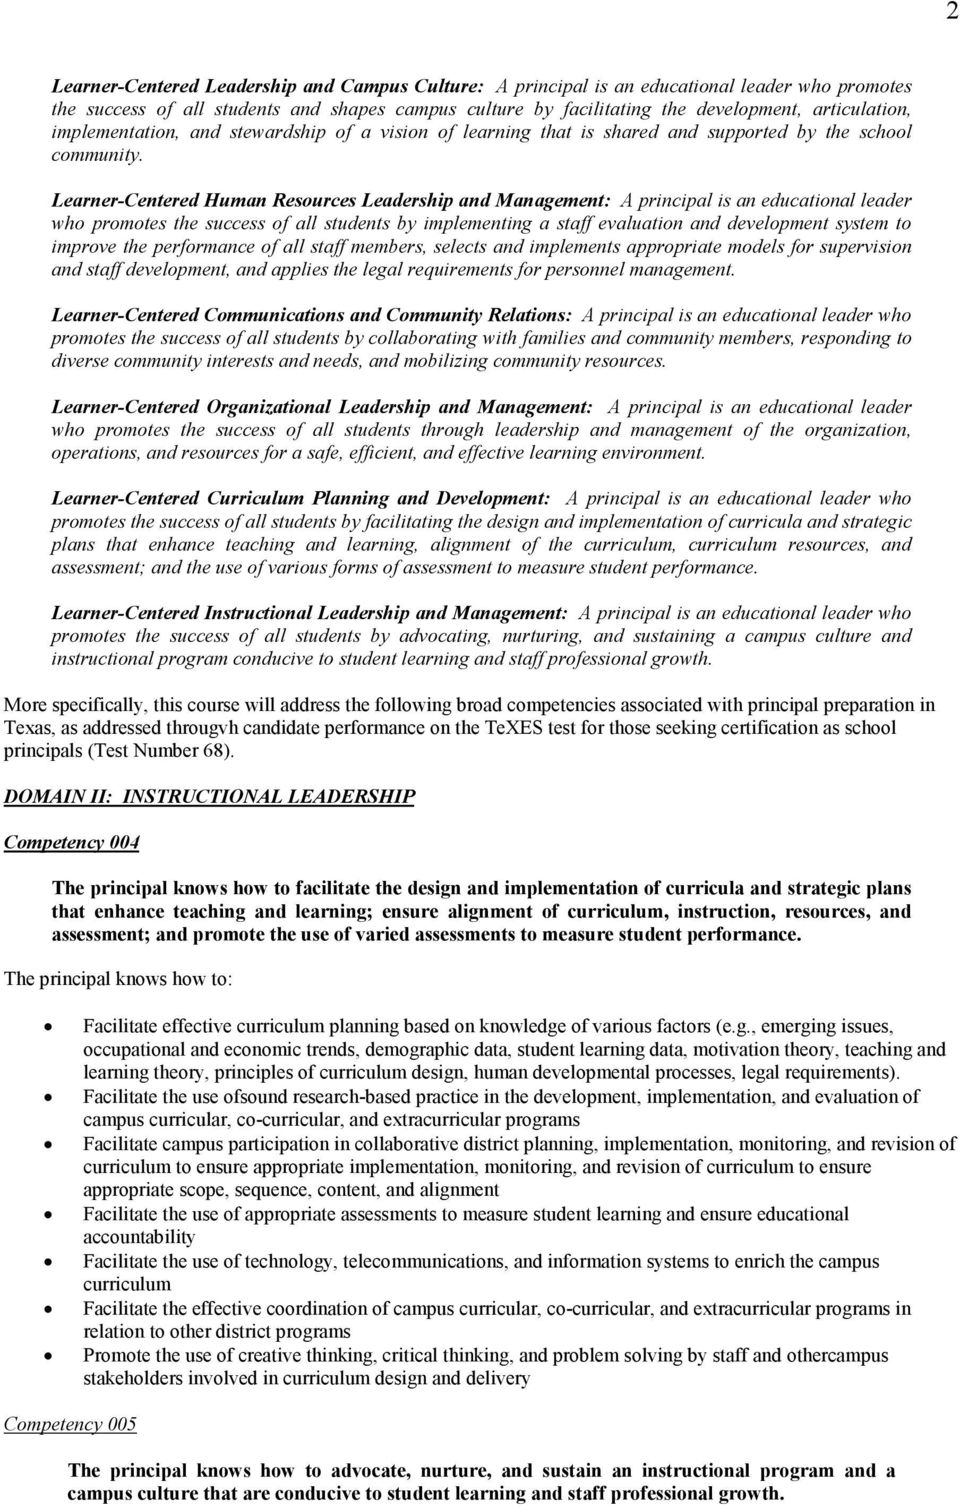 Learner-Centered Human Resources Leadership and Management: A principal is an educational leader who promotes the success of all students by implementing a staff evaluation and development system to